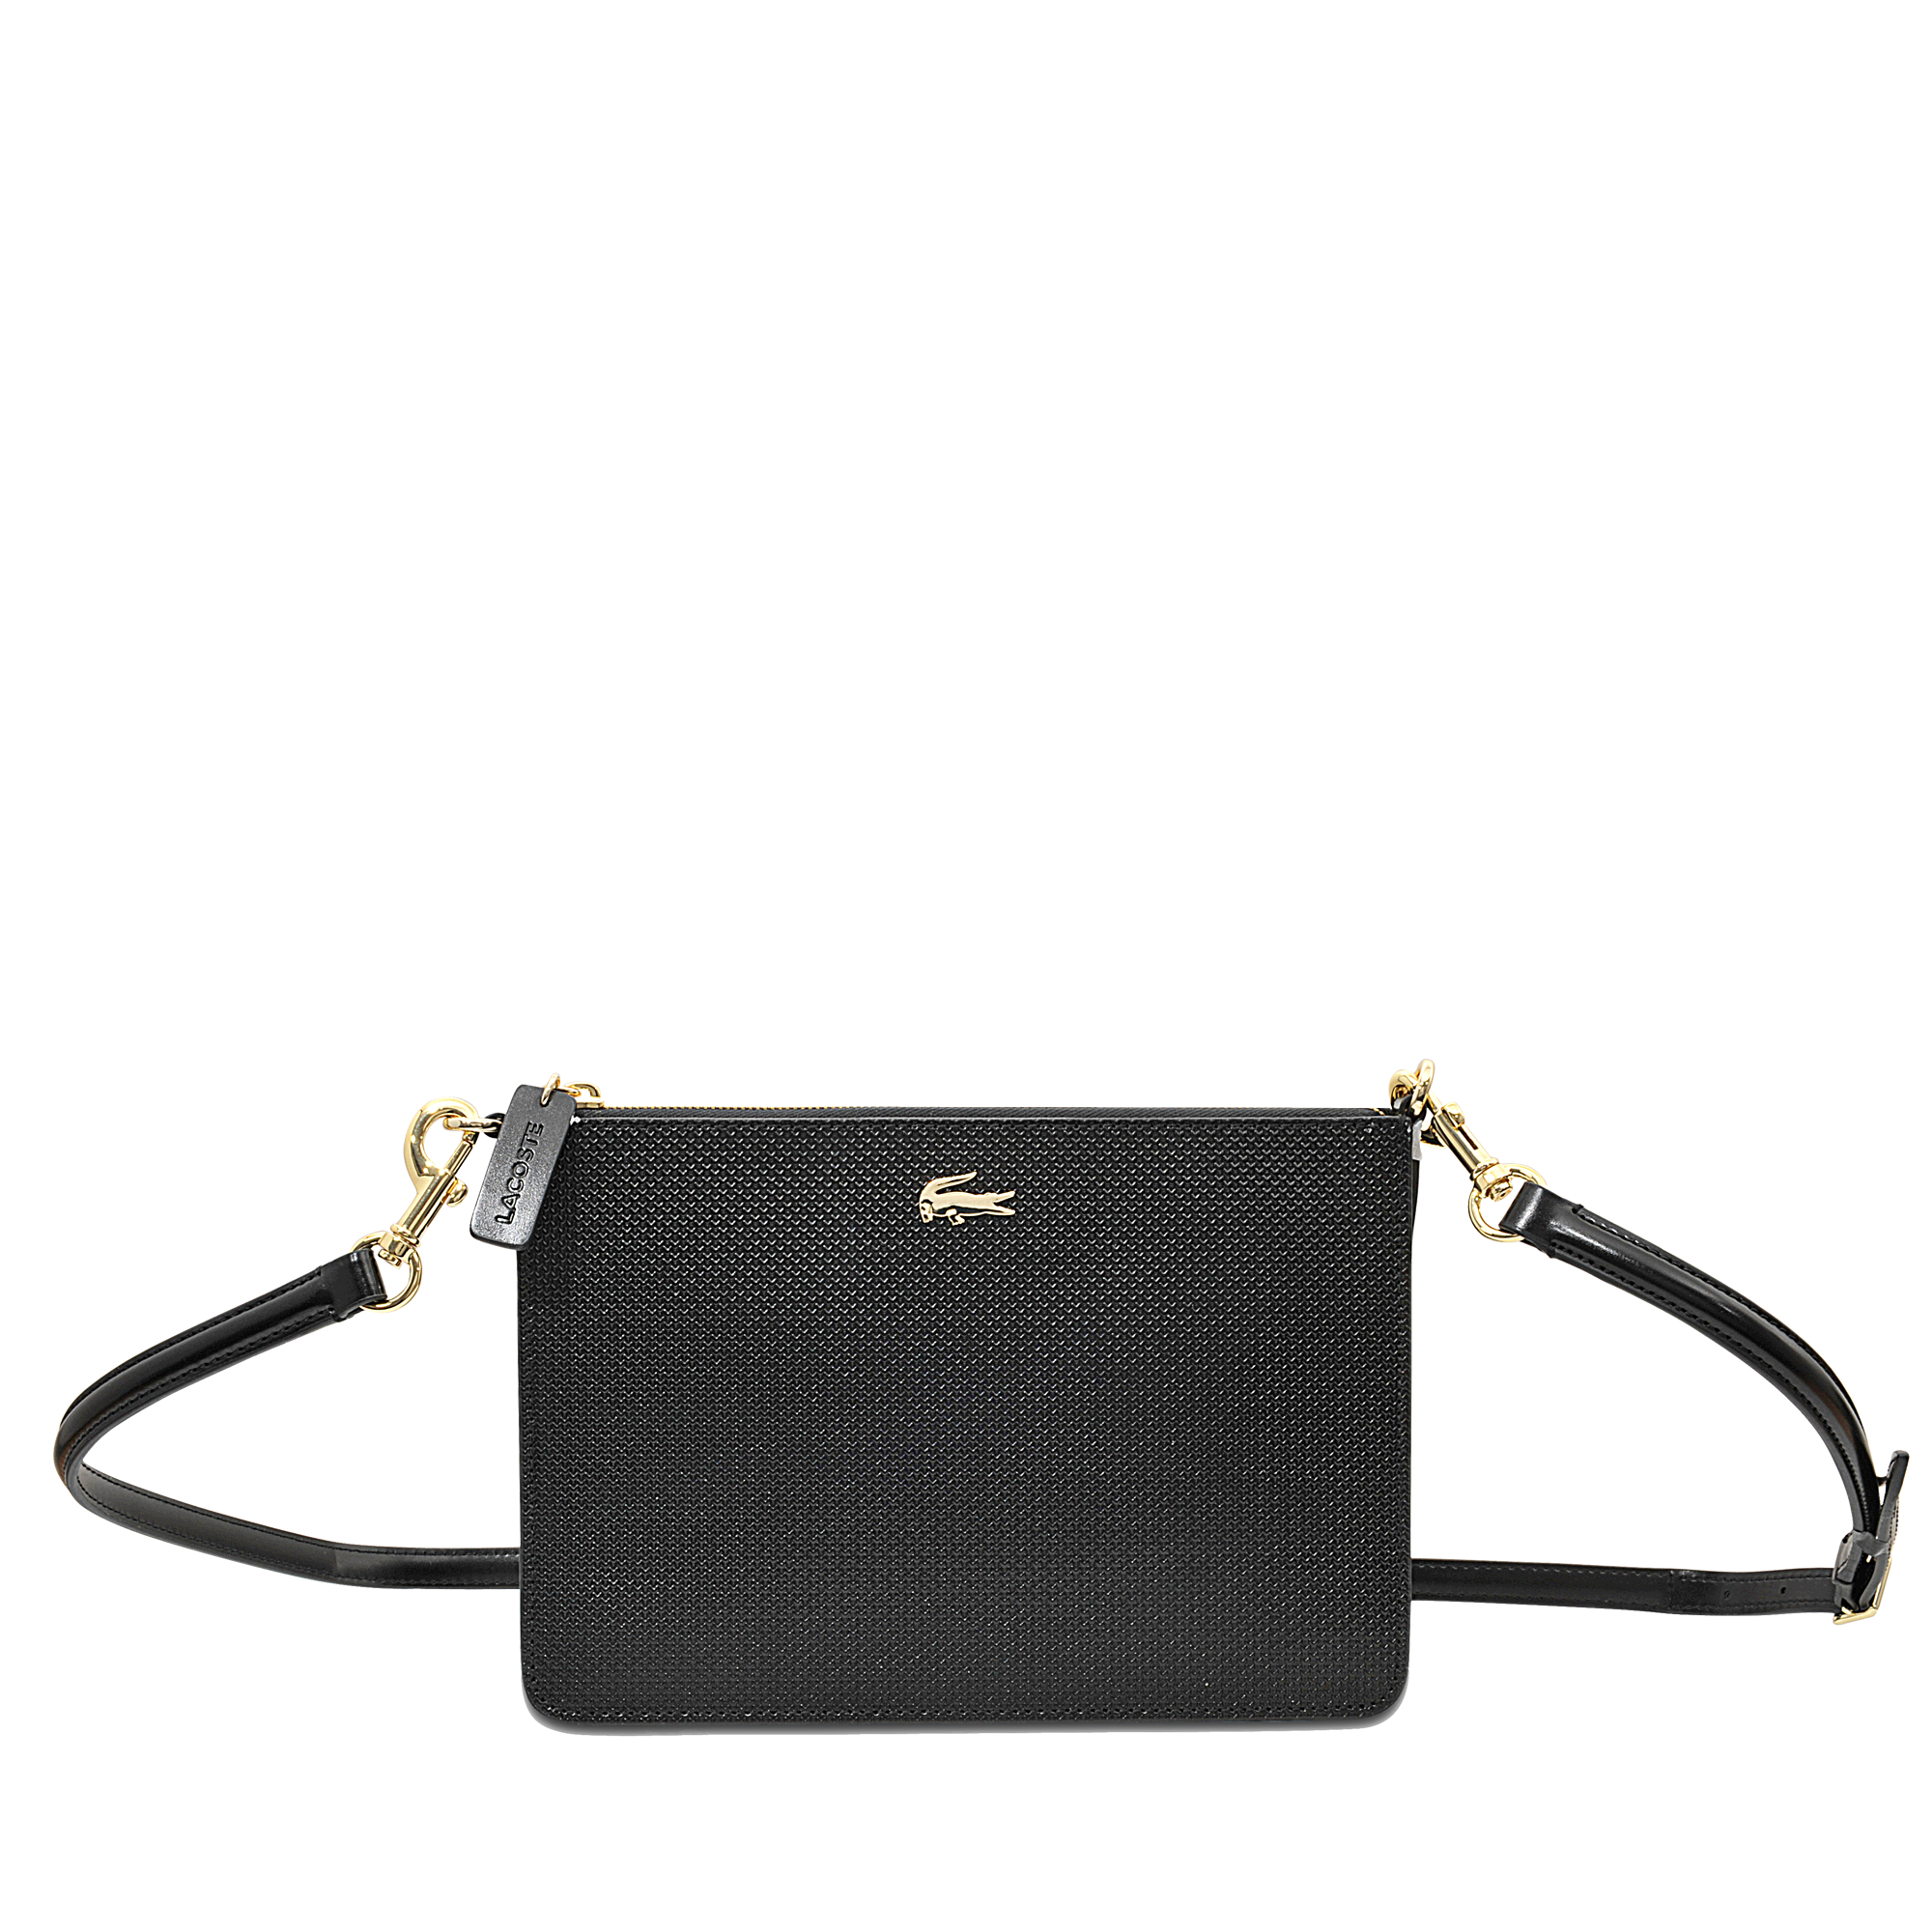 60108e63a893d1 Lyst - Lacoste Chantaco Zip Crossover Bag in Black